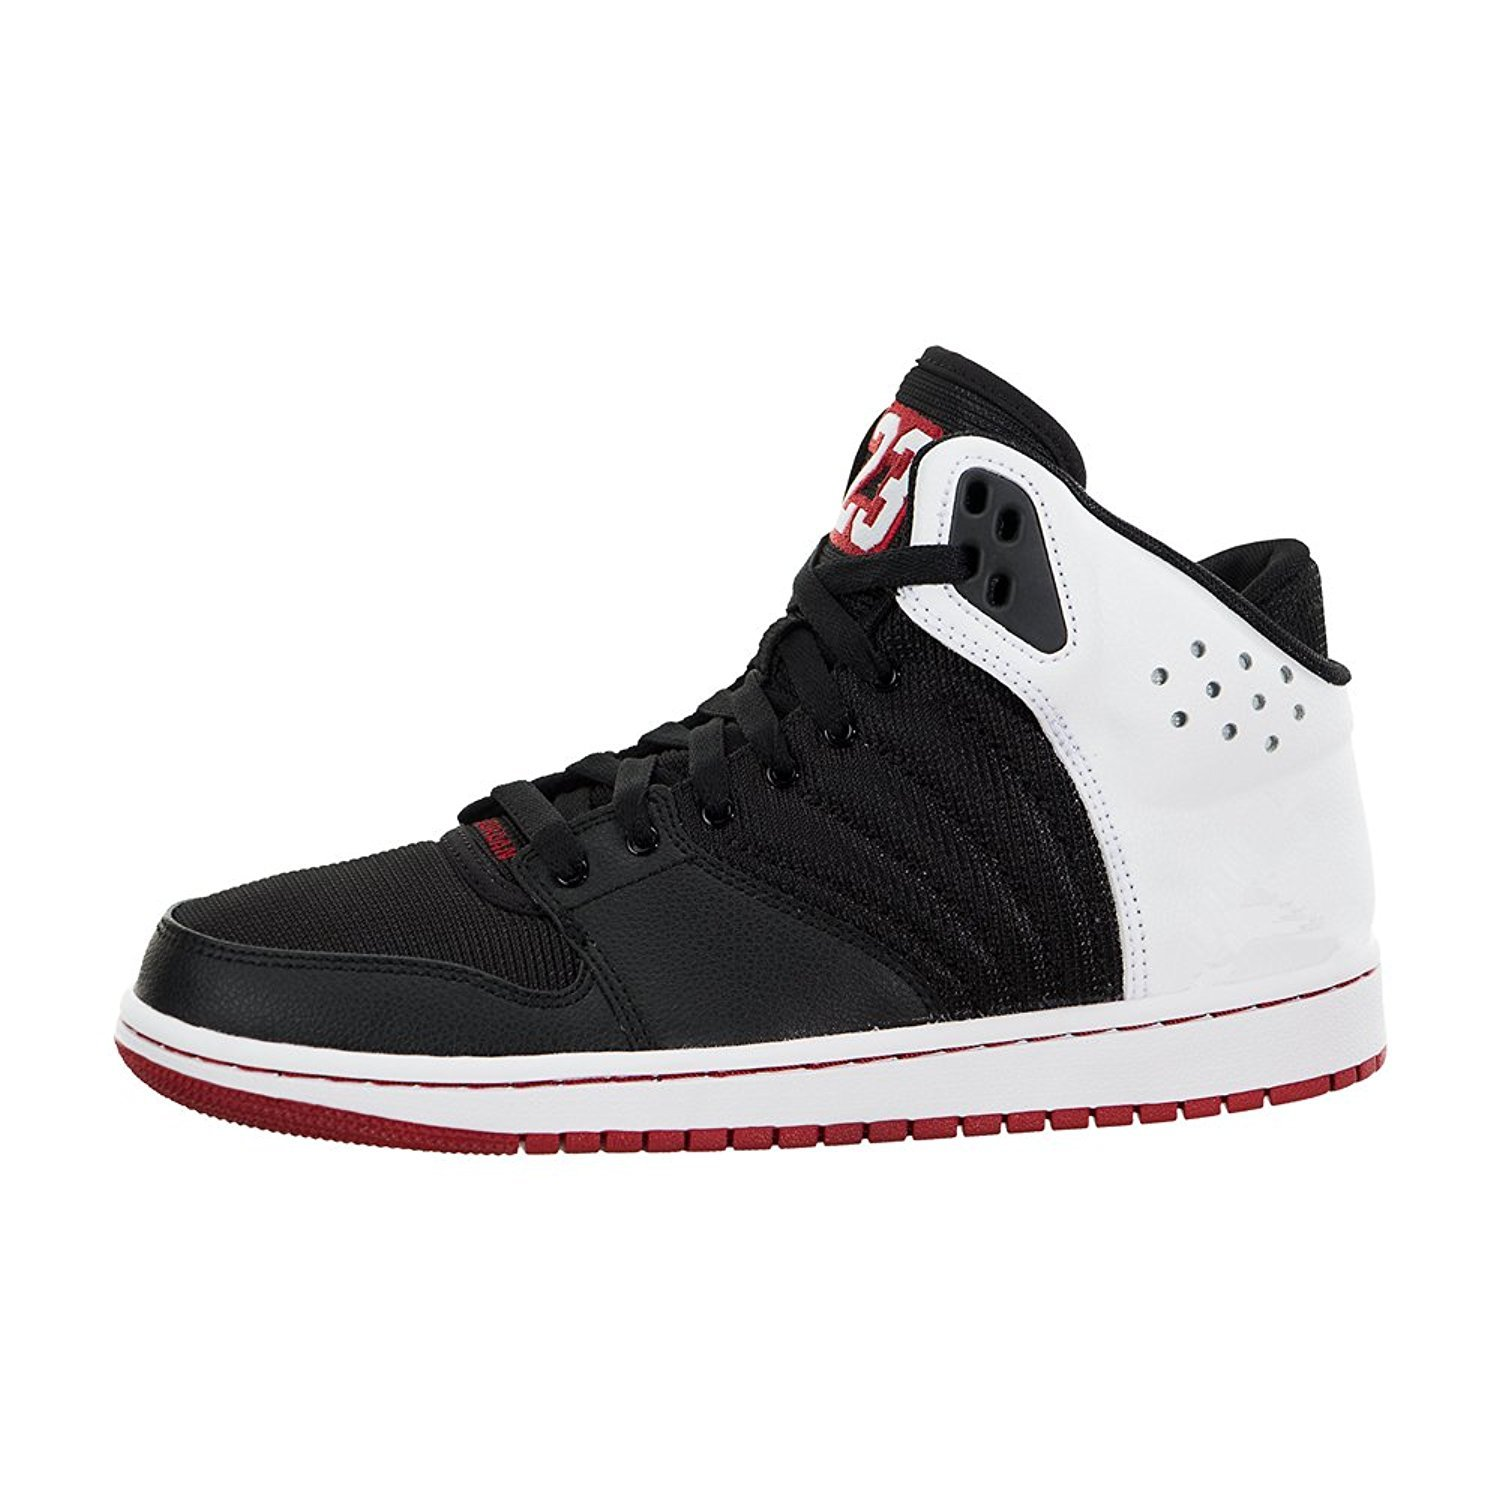 sports shoes 6fb29 f9e86 Jordan Men's 1 Flight 4 Shoe (820135-001) - Black/Gym RED/White